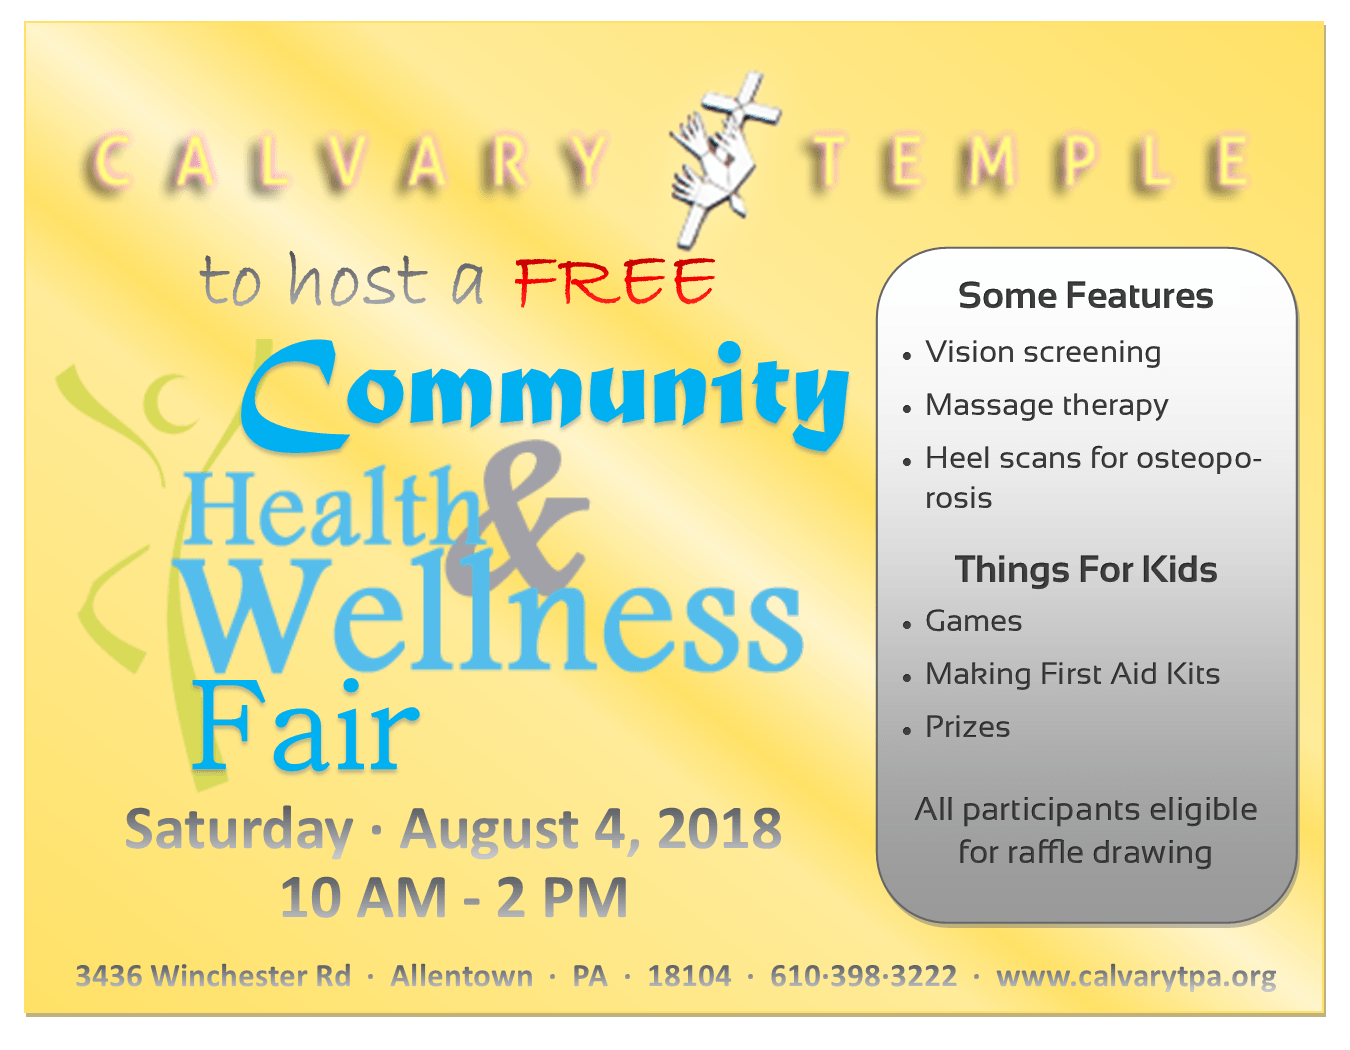 Free Community Health & Wellness Fair 2018